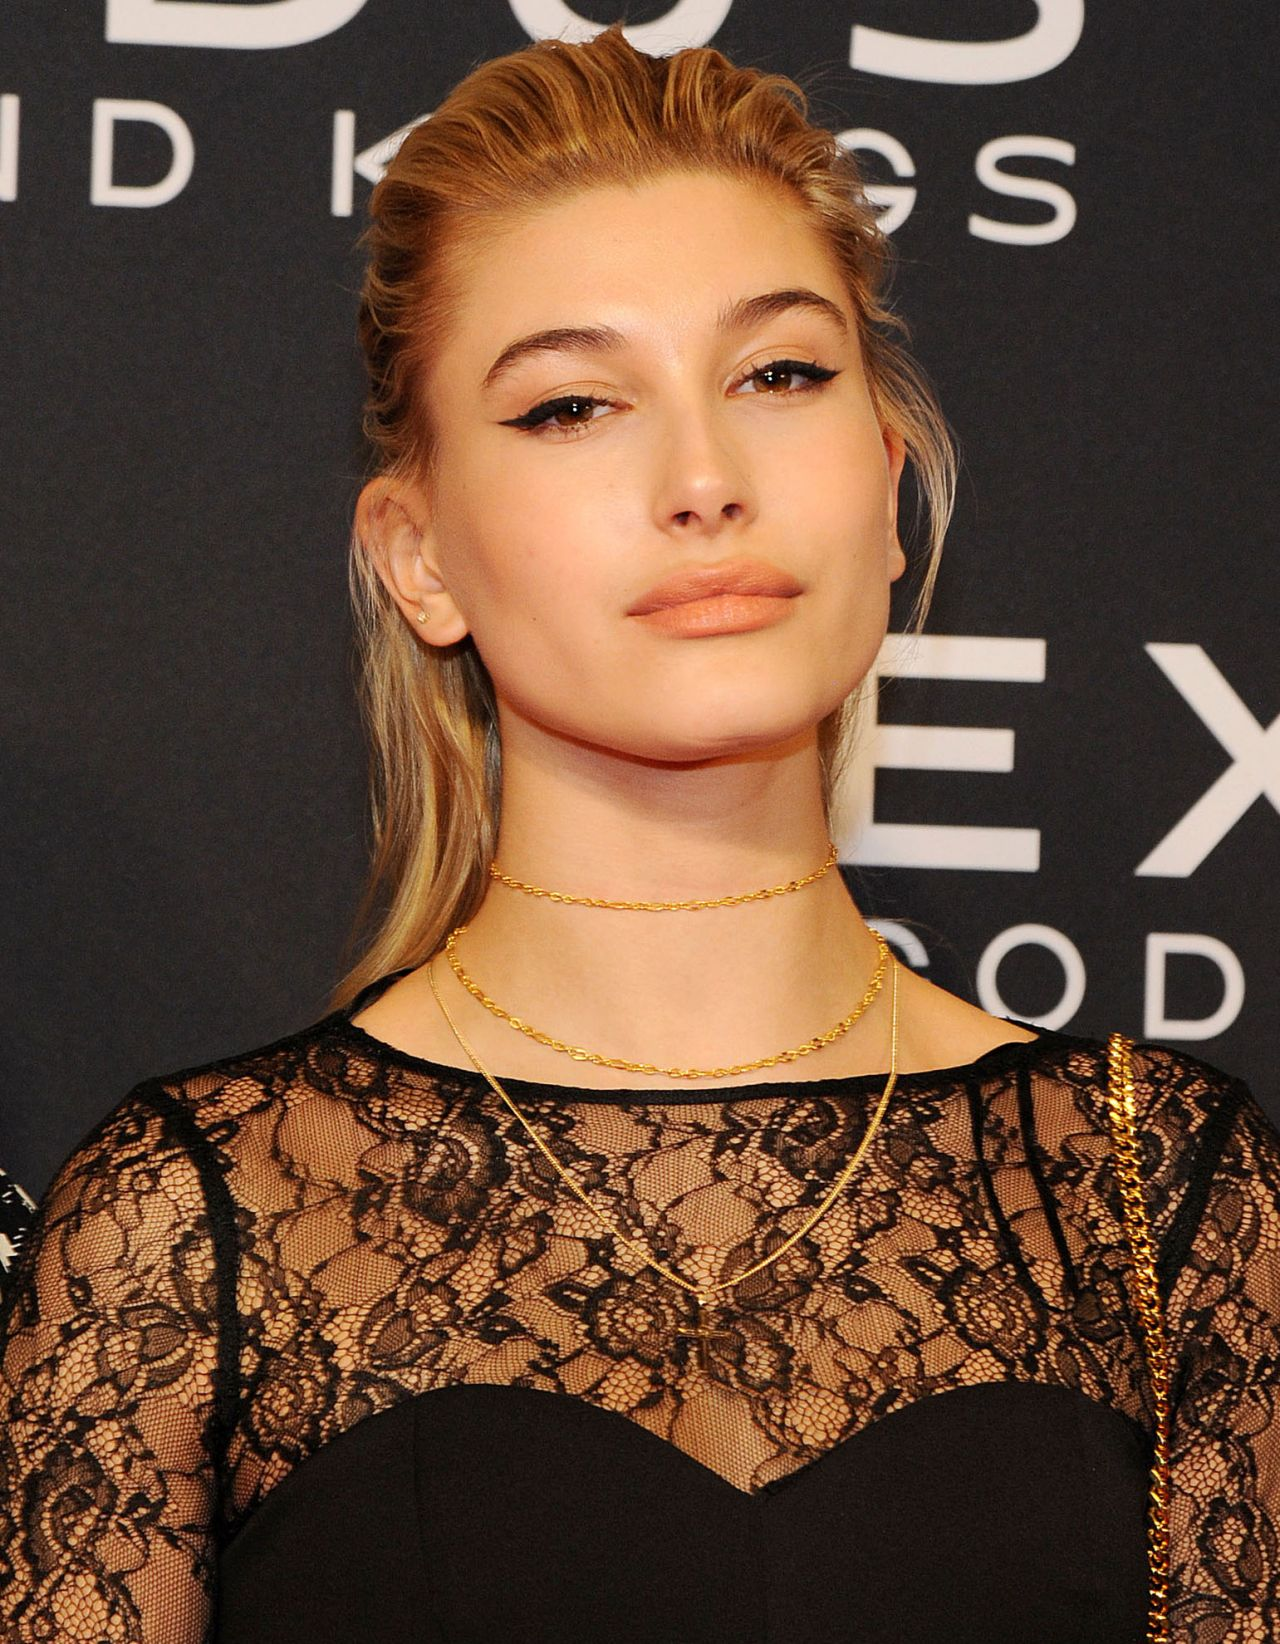 Hailey Baldwin Exodus Gods And Kings Premiere In New